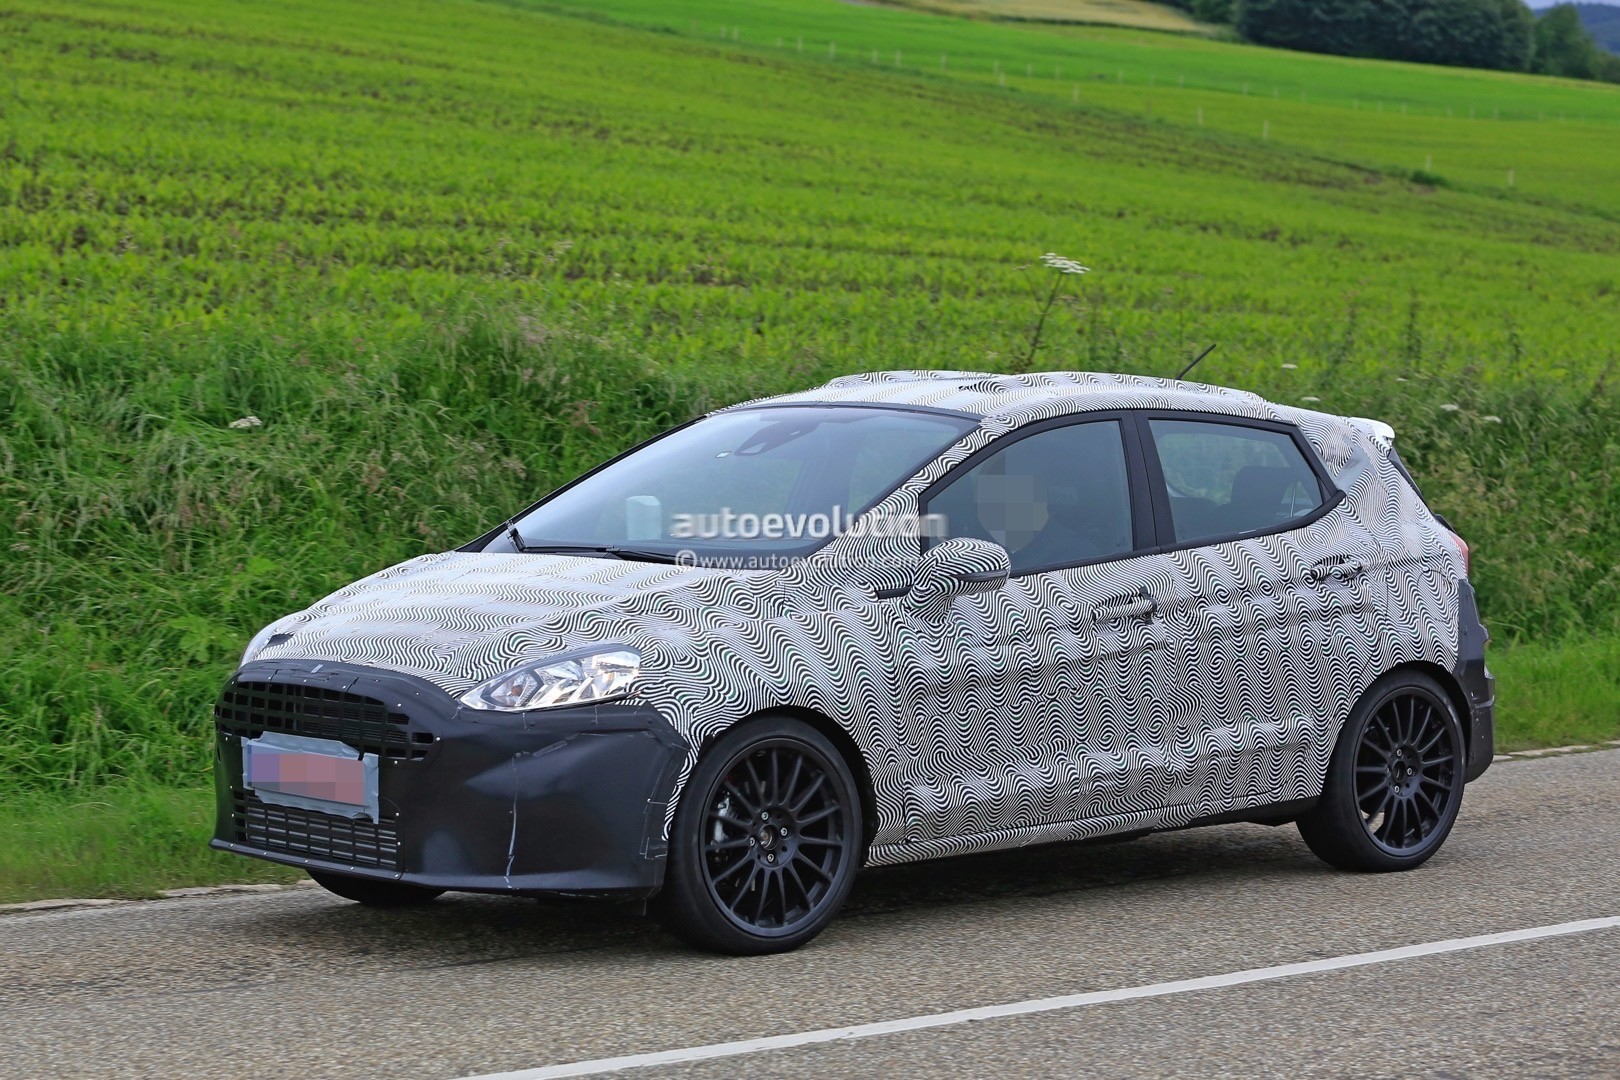 2018 ford fiesta st spied benchmarking against current fiesta st autoevolution. Black Bedroom Furniture Sets. Home Design Ideas